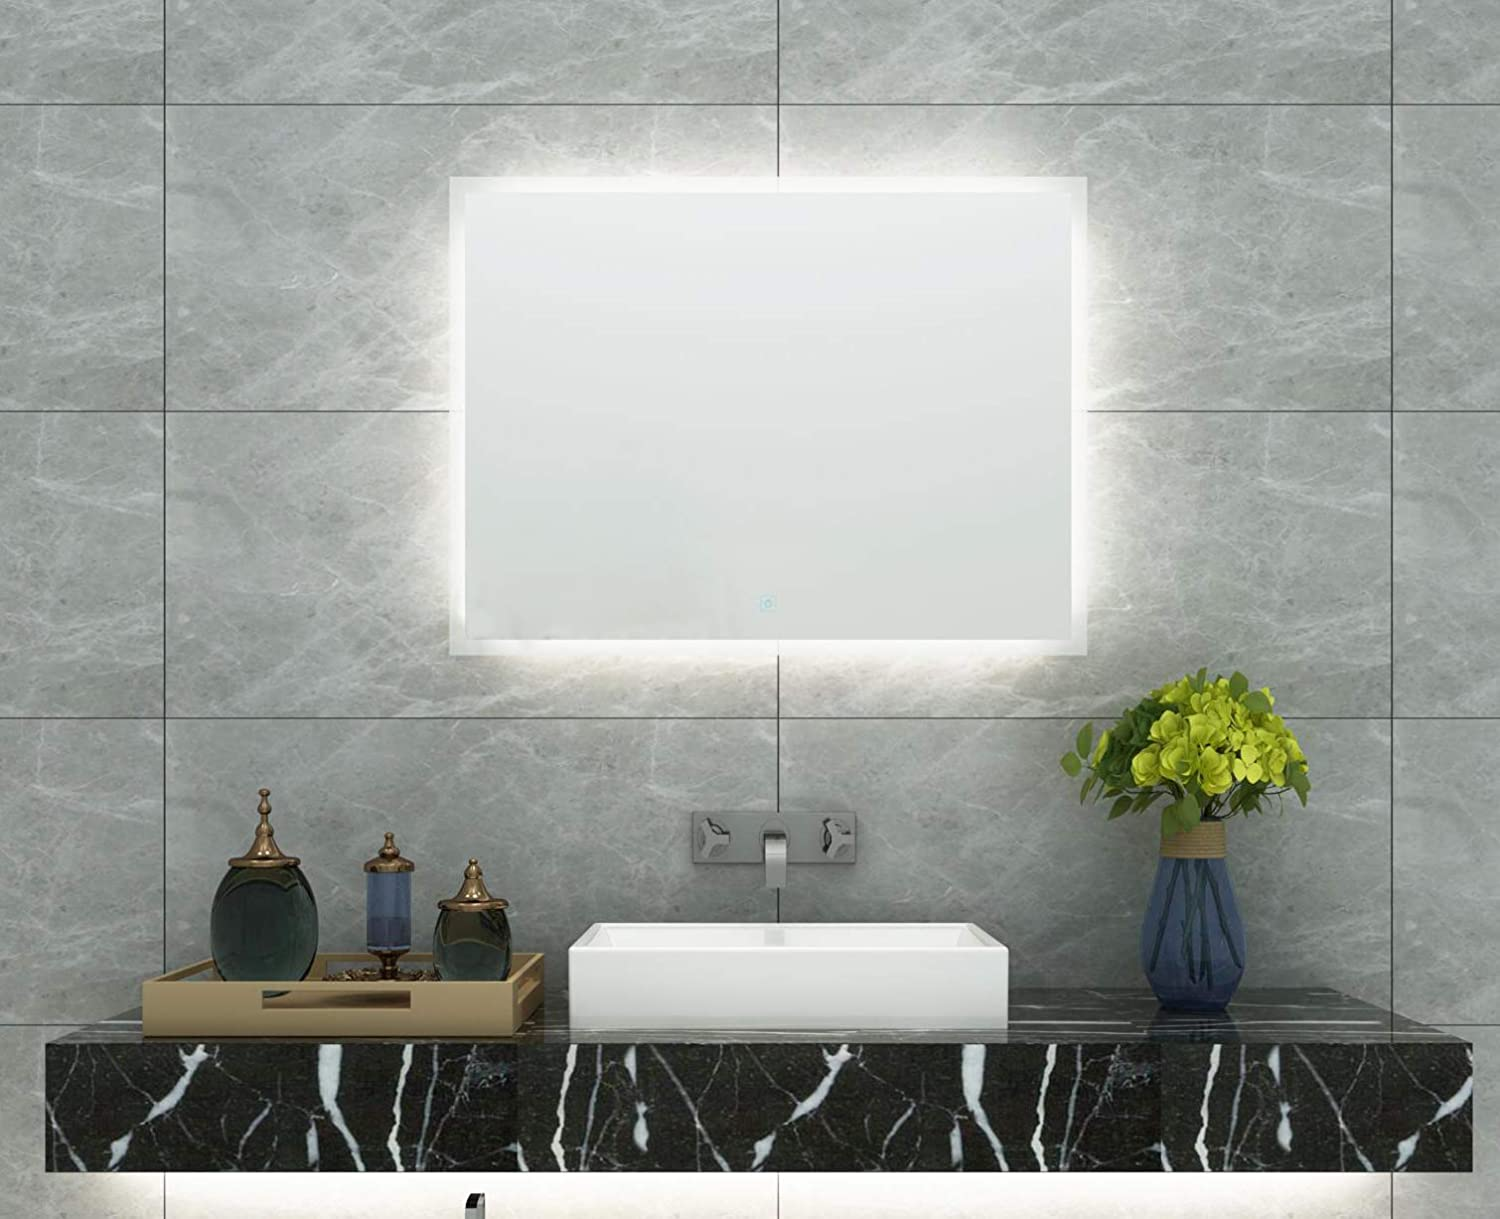 DIYHD FLB W36 X H24 Box Diffusers Led Backlit Vanity Square Wall Mount Bathroom Finger Touch Light Mirror, 36 24 ,